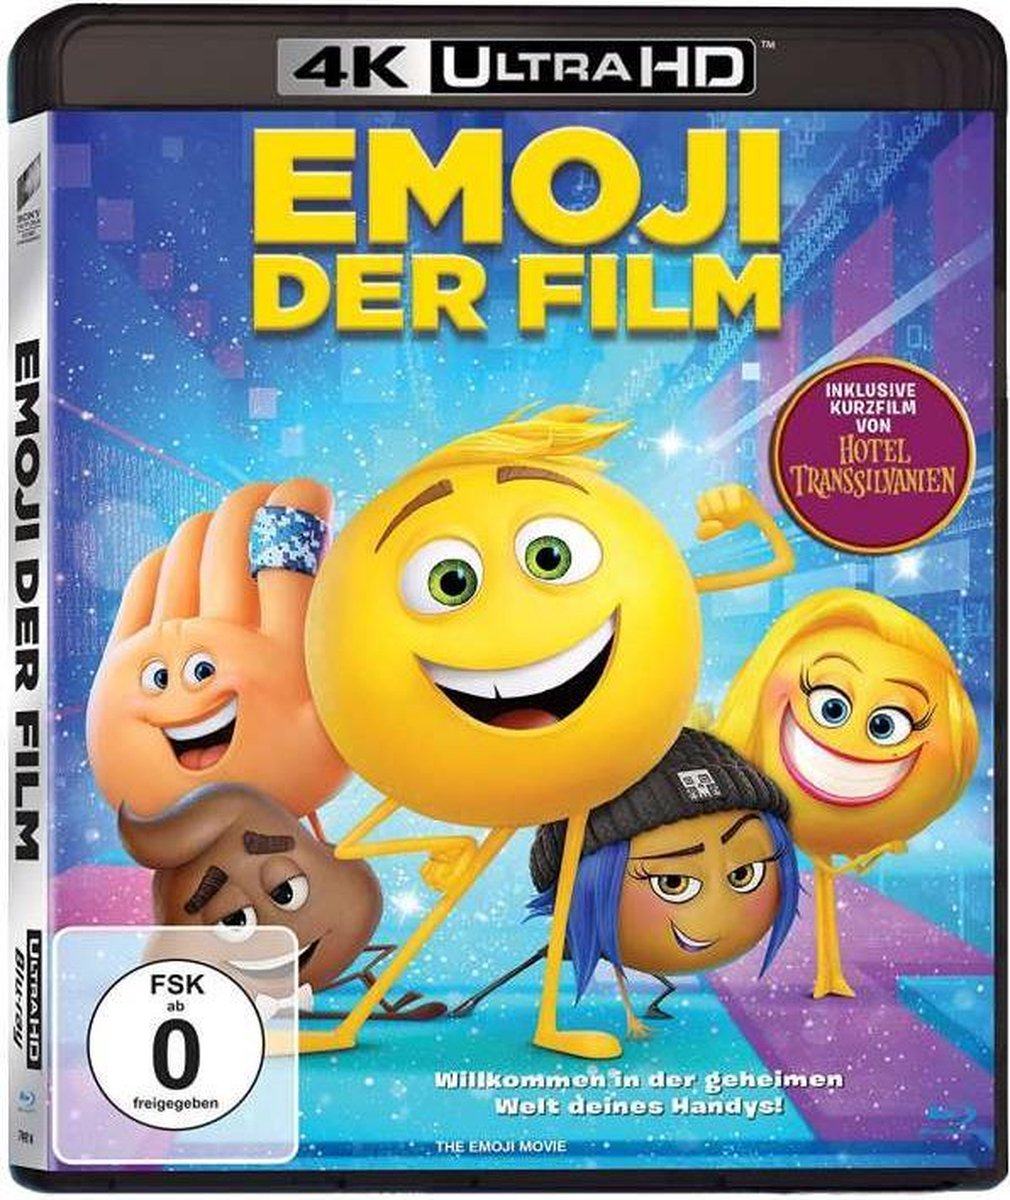 The Emoji Movie (2017) (Ultra HD Blu-ray & Blu-ray)-